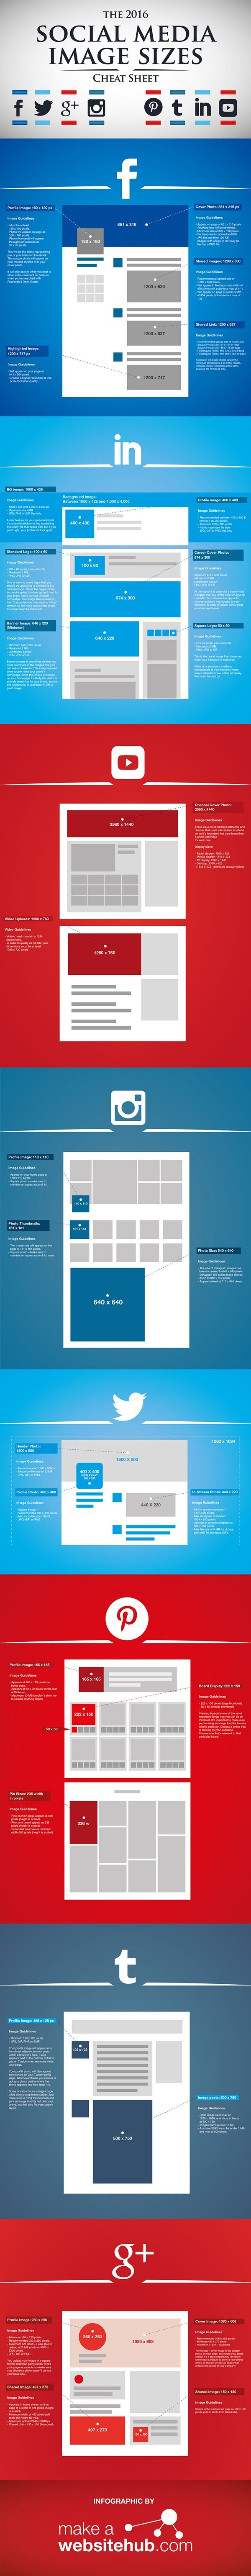 [INFOGRAPHIC] The 2016 Social Media Image Sizes Cheat Sheet—Details>